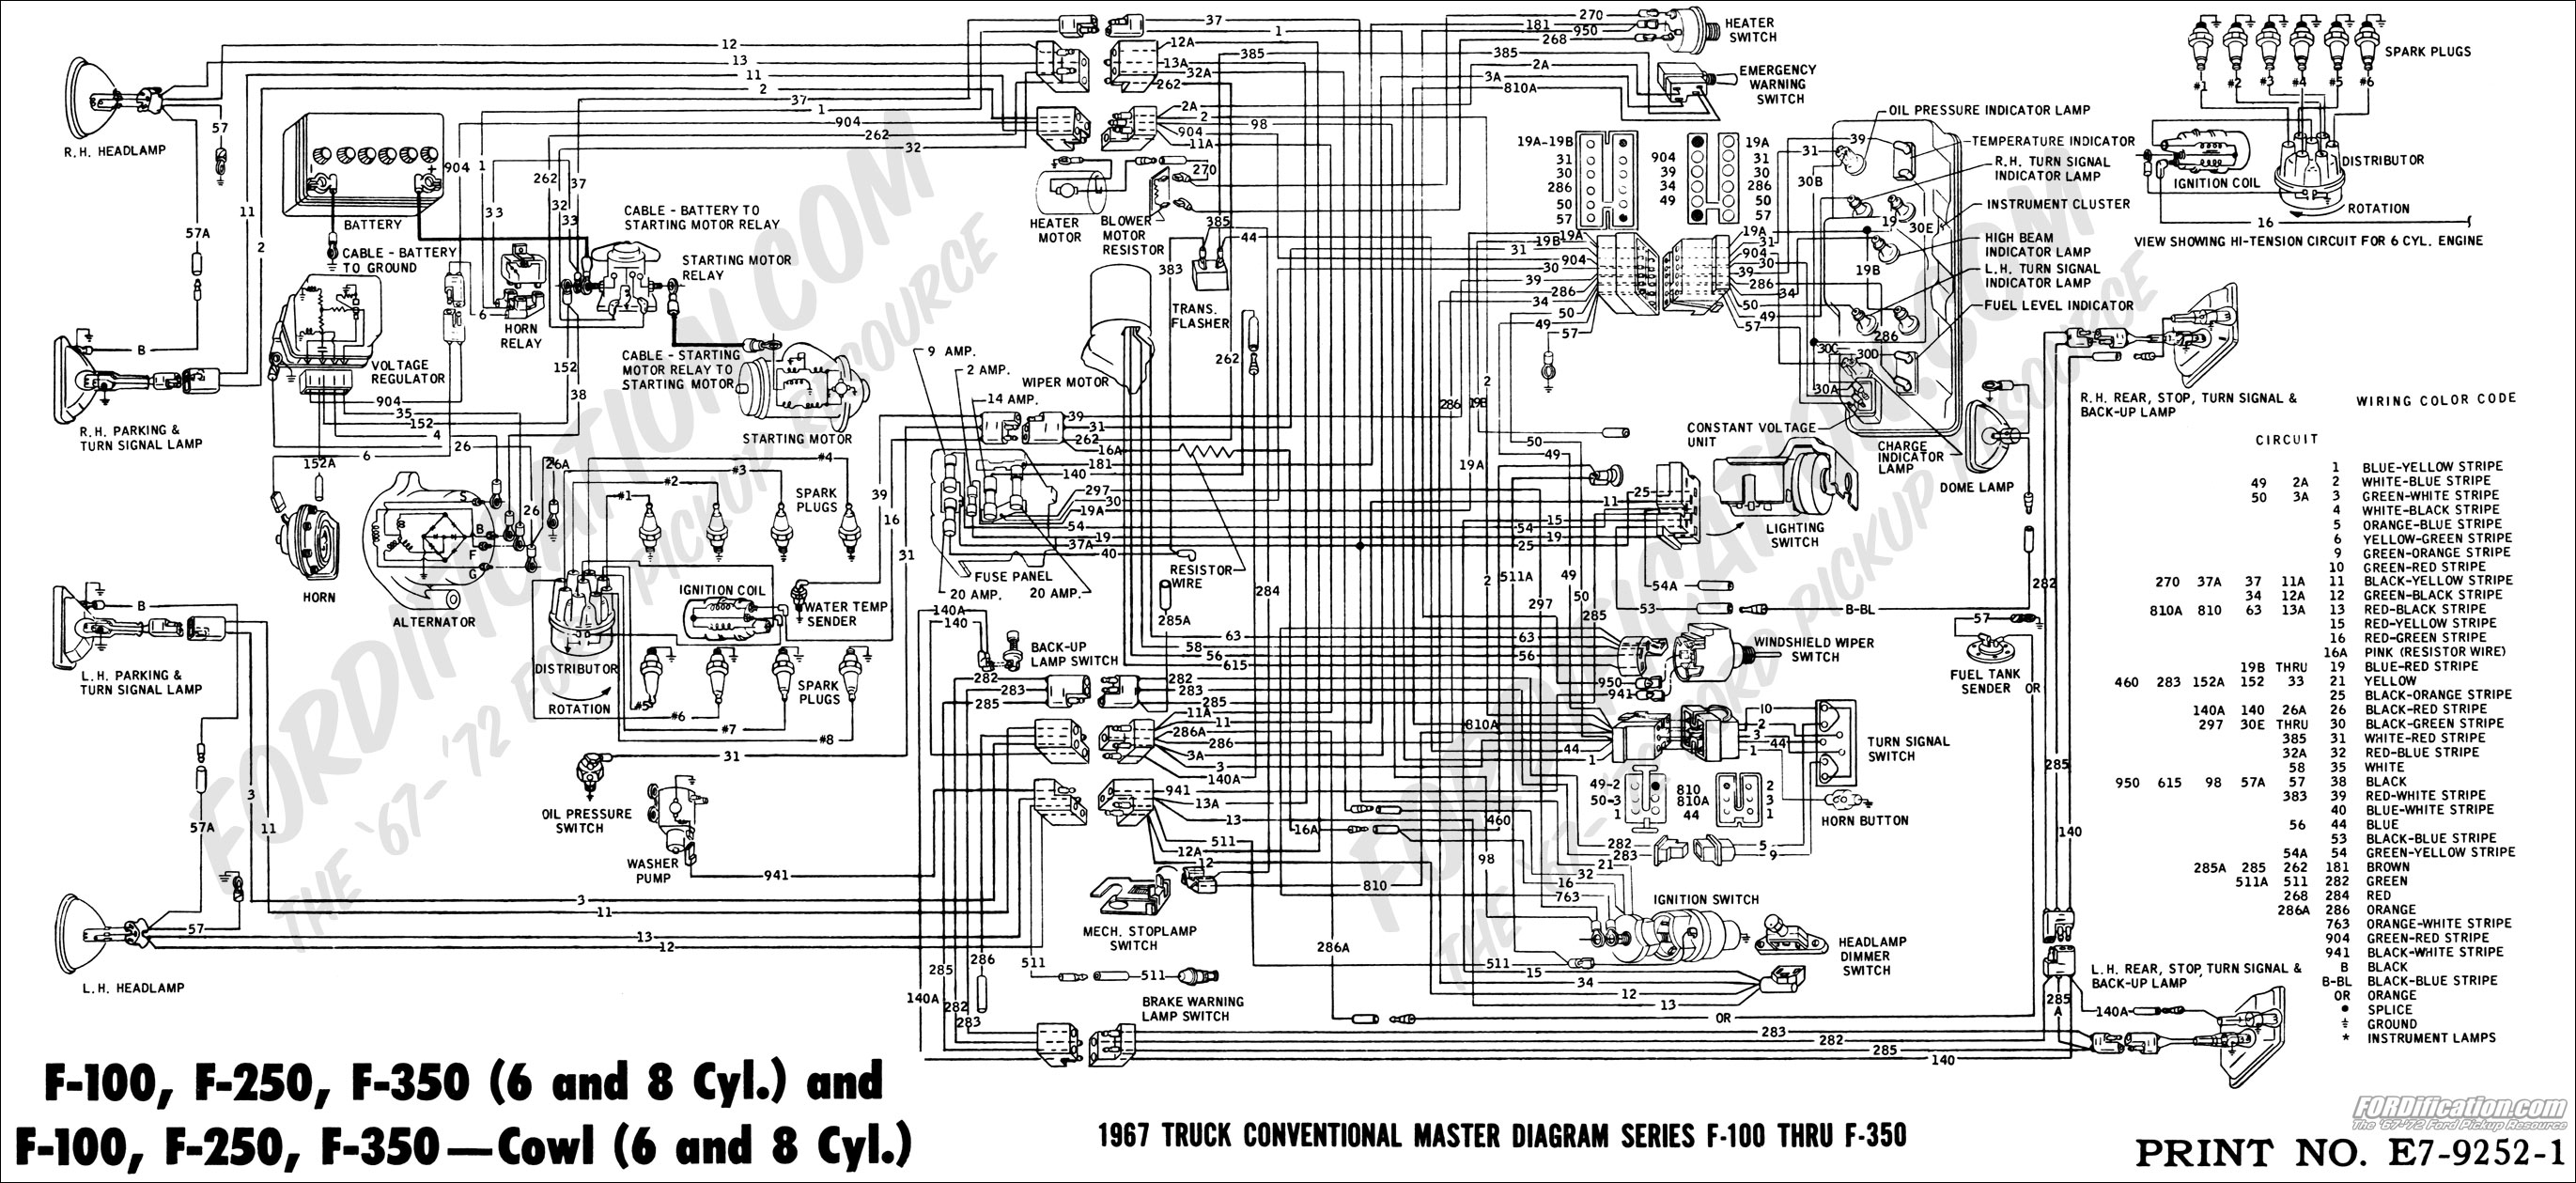 67masterdiagram ford f150 wiring diagrams ford wiring diagrams instruction 1992 f150 wiring harness at gsmx.co